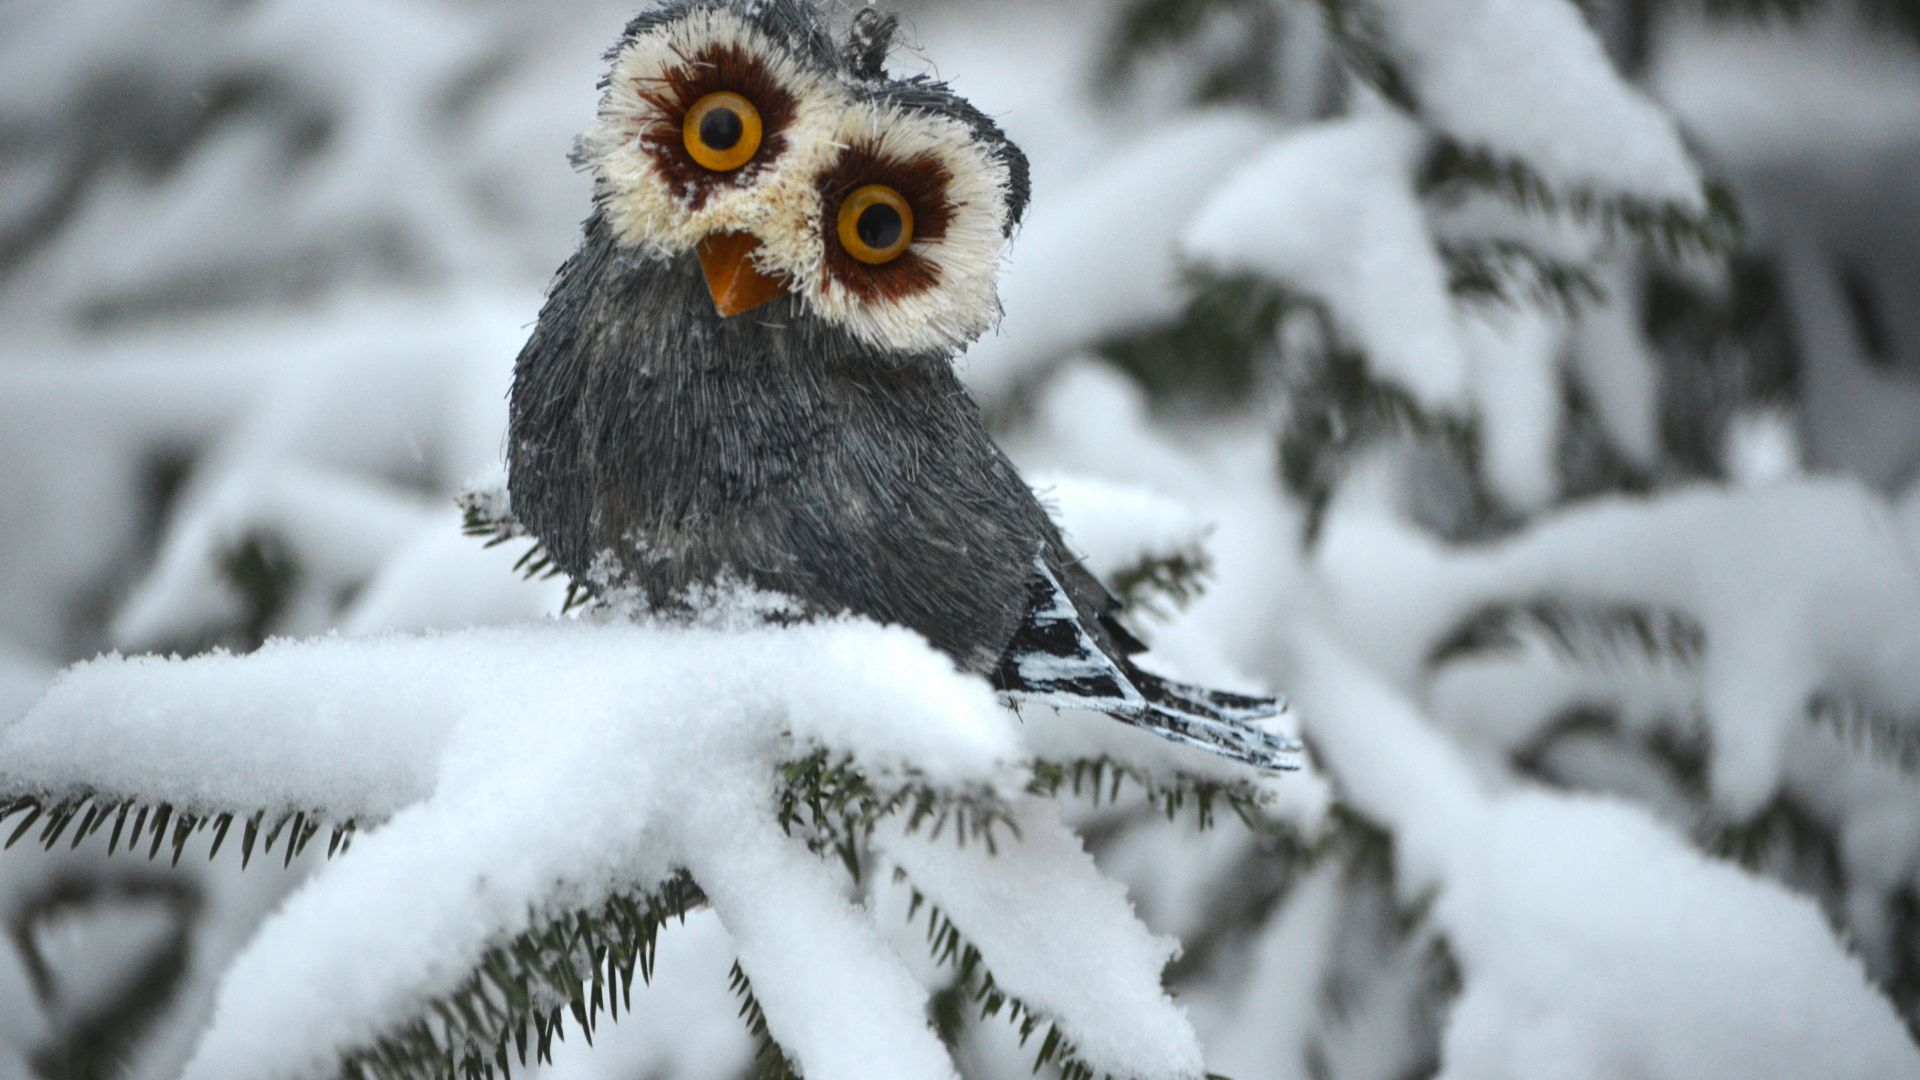 Types of owls hd wallpaper animals wallpapers types of owls hd wallpapers voltagebd Choice Image